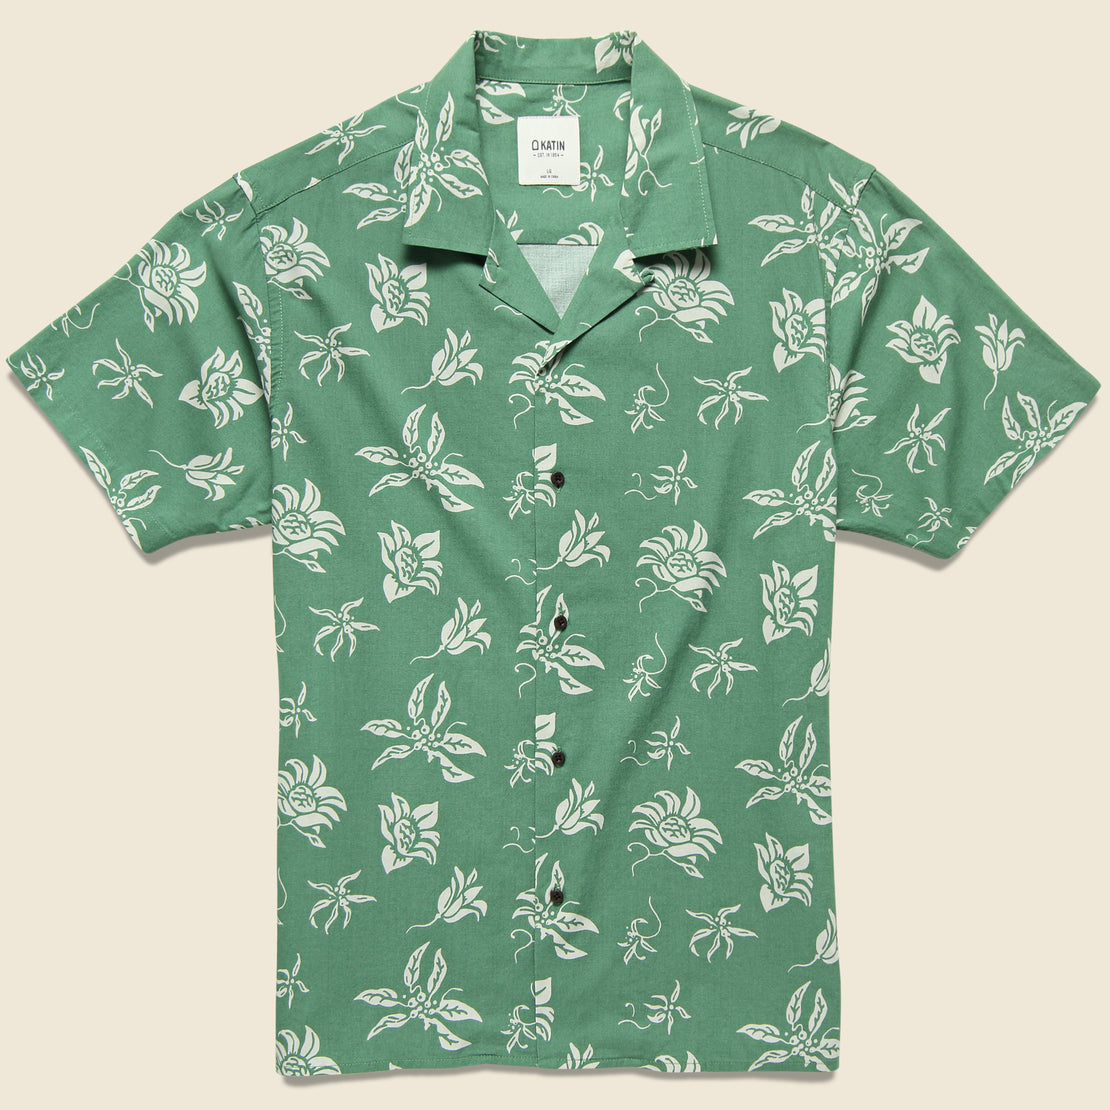 Katin Haiku Aloha Camp Shirt - Herb